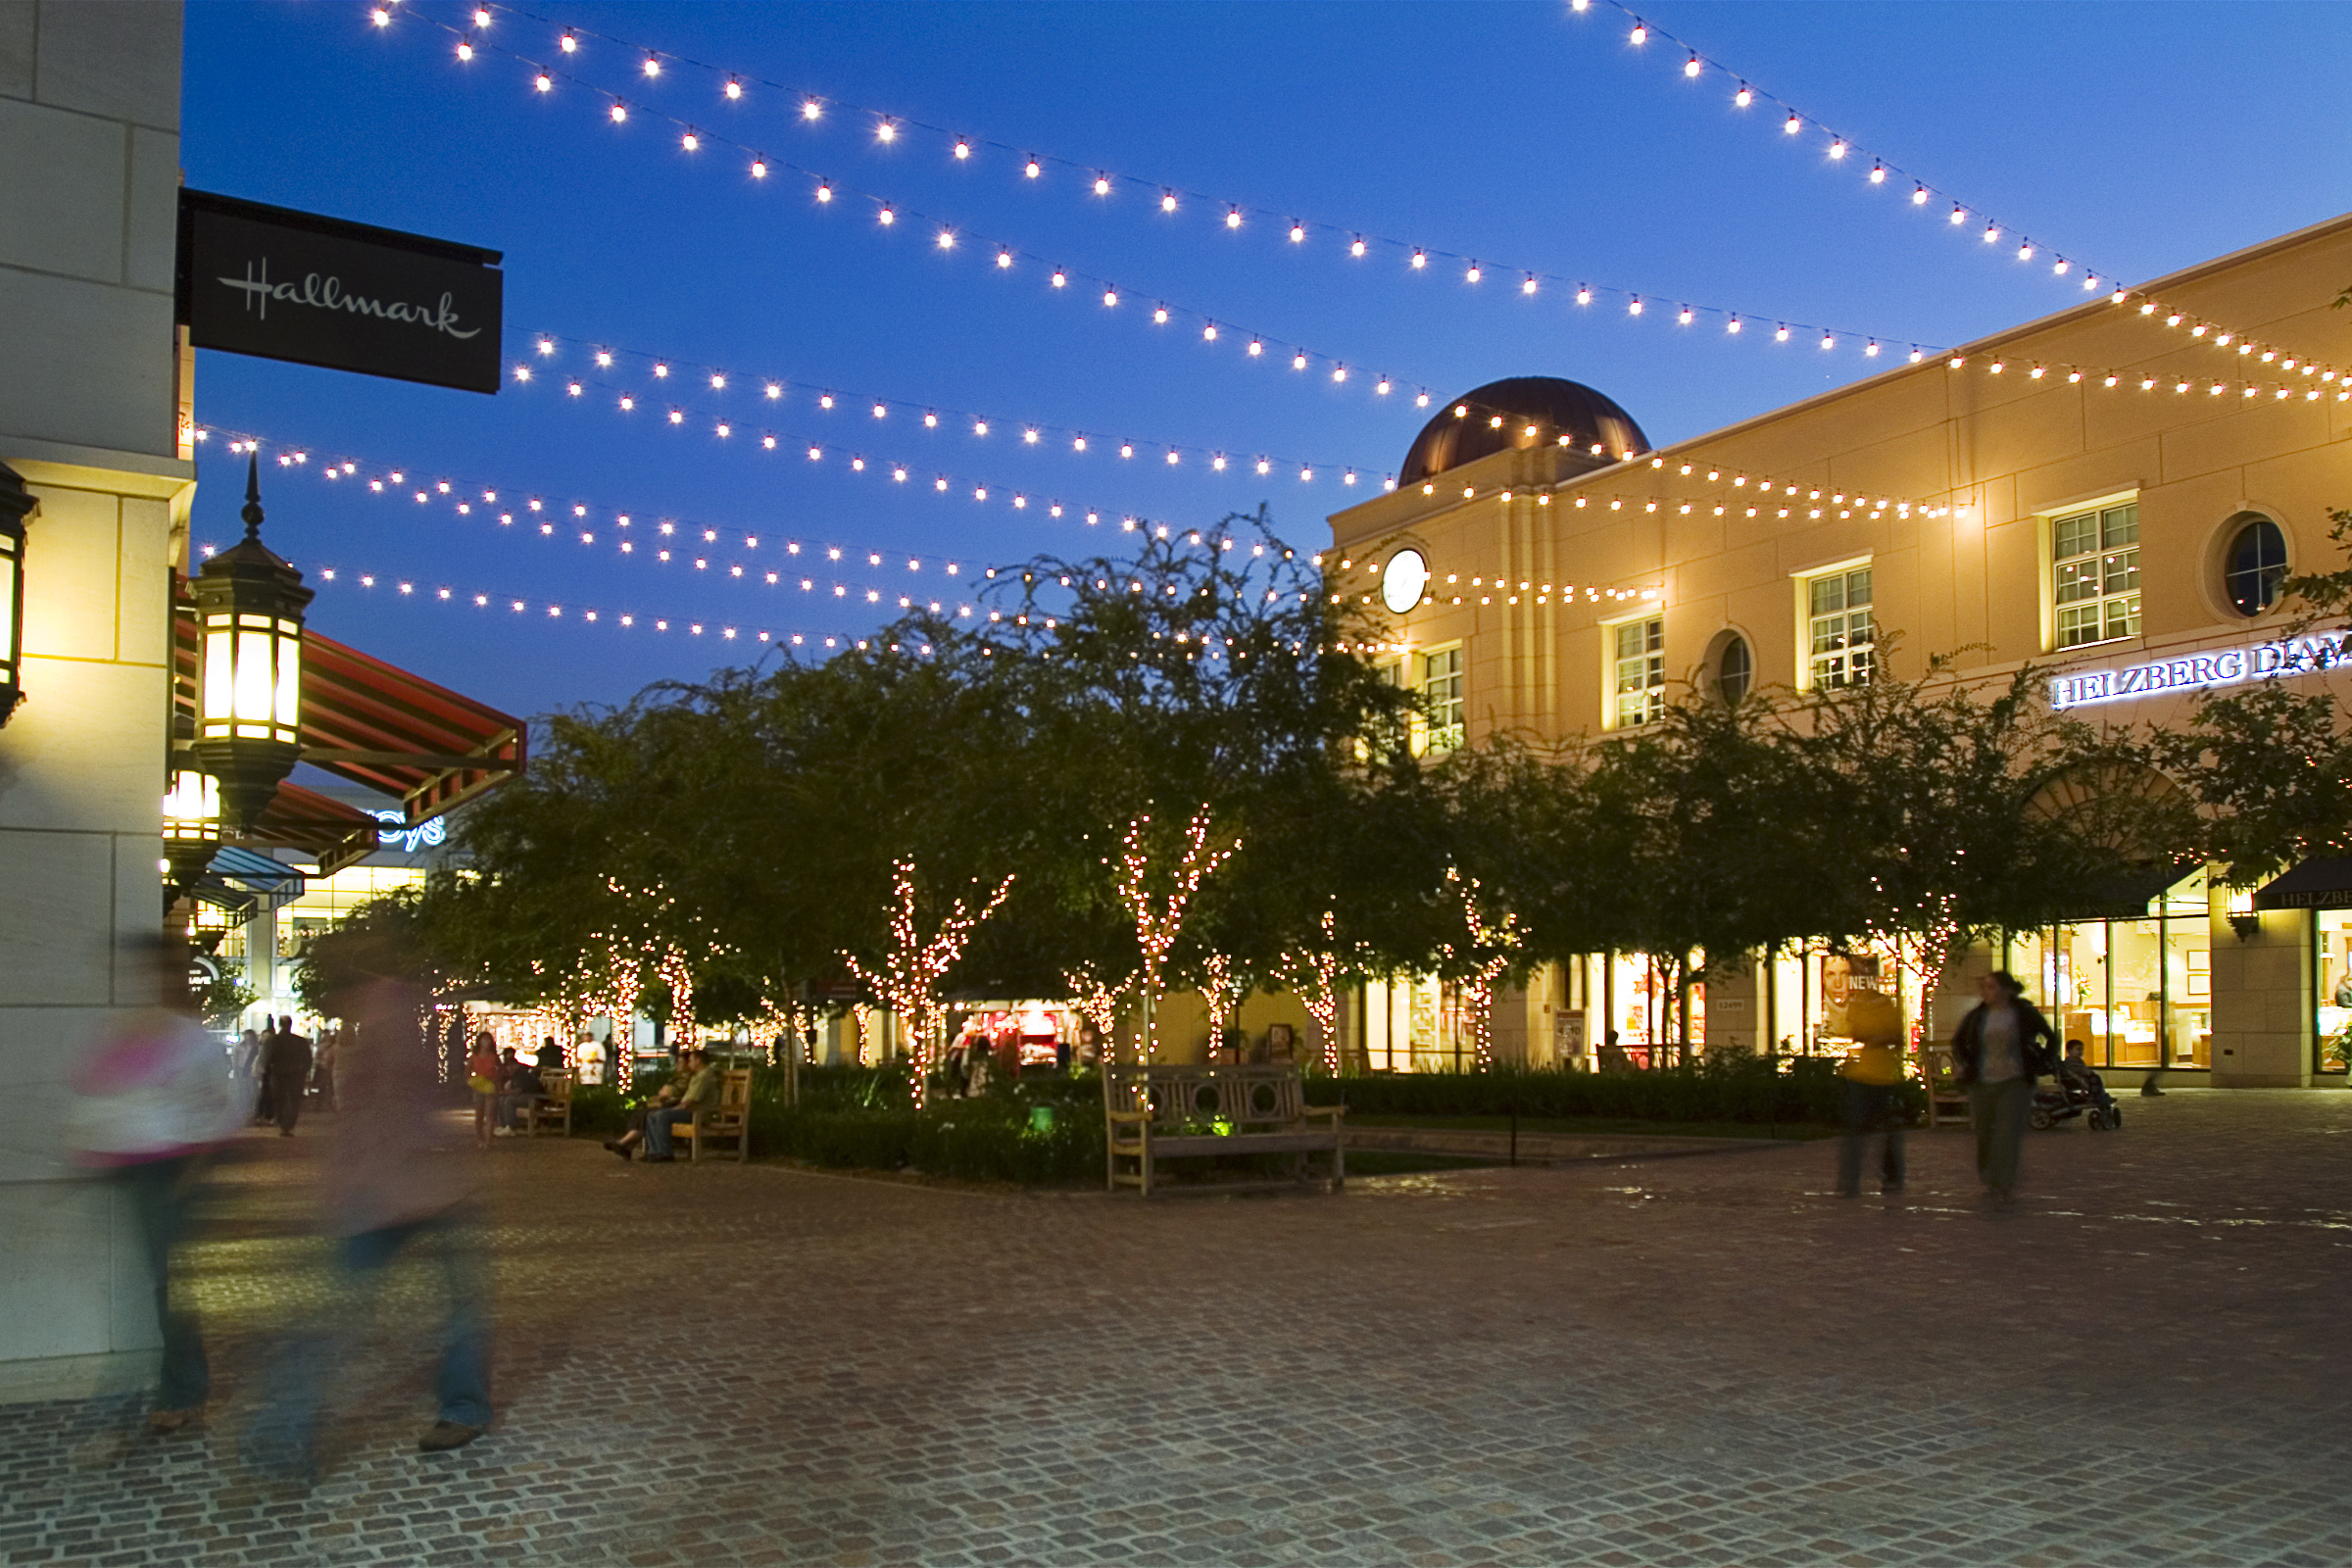 cebb41aa80 Victoria Gardens is a lifestyle center that combines the best traditions of  Western American town centers with the social and planning needs of the  21st ...